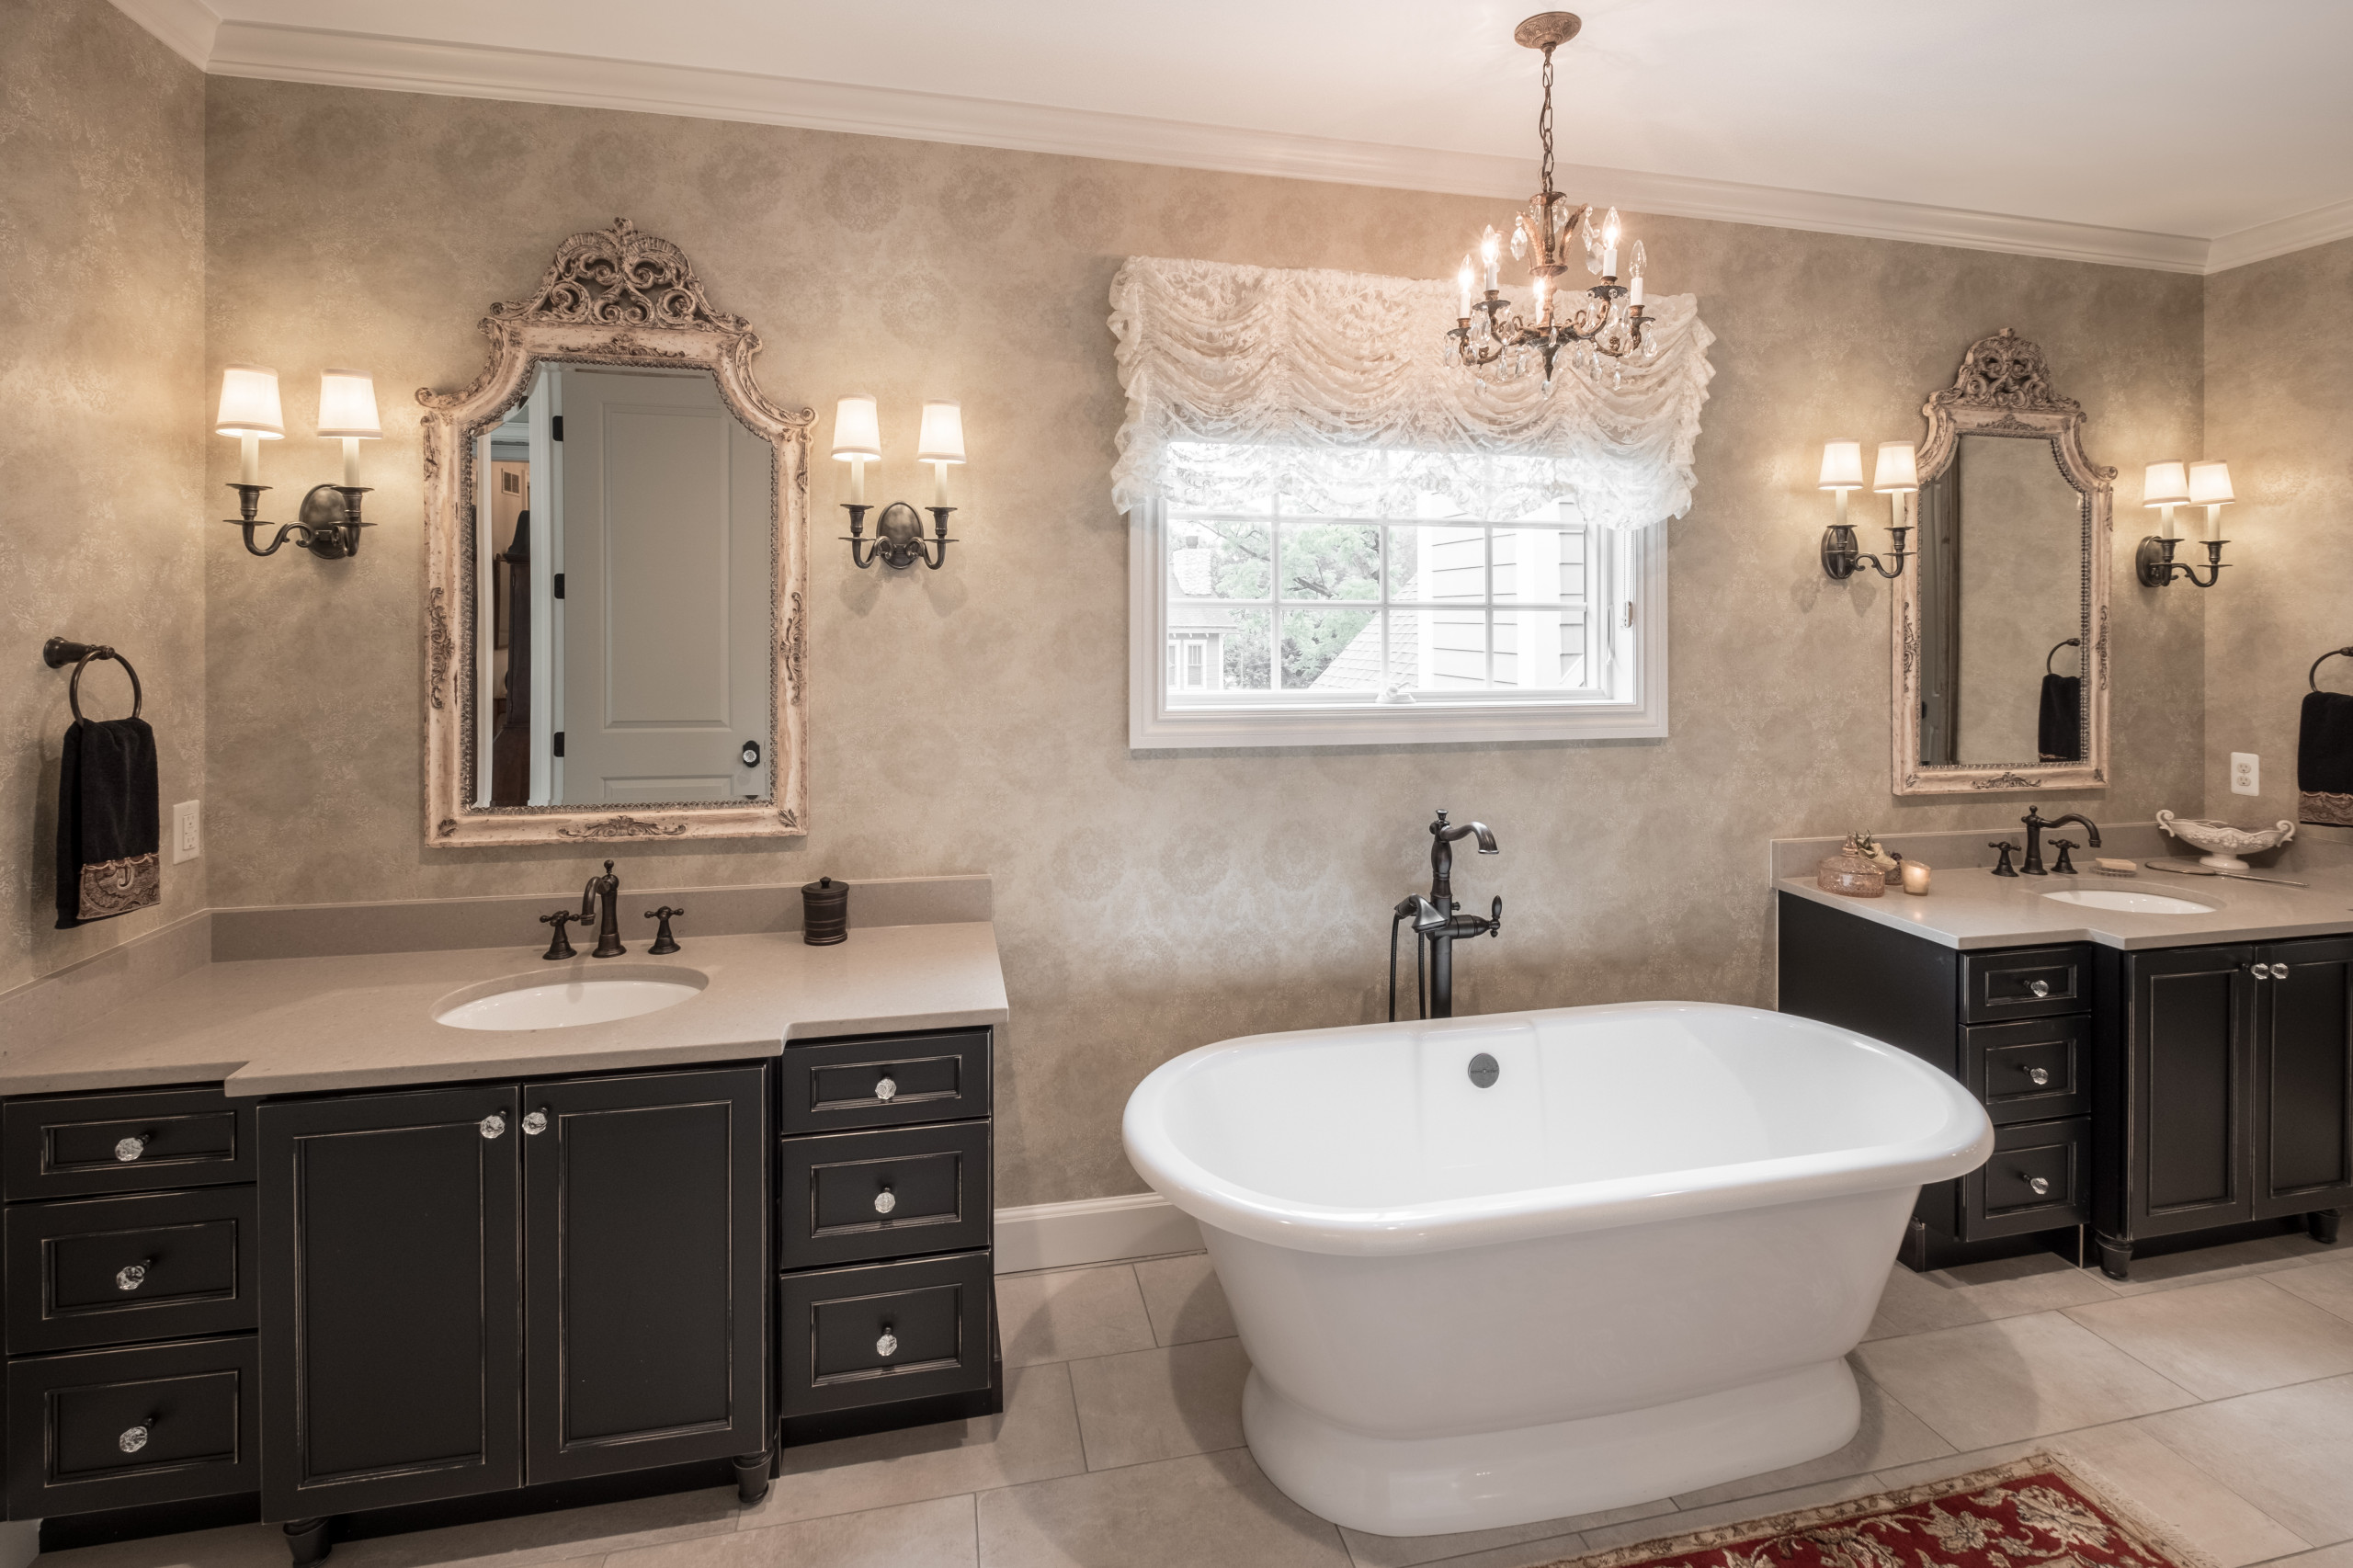 75 Beautiful Large Bathroom Pictures Ideas January 2021 Houzz